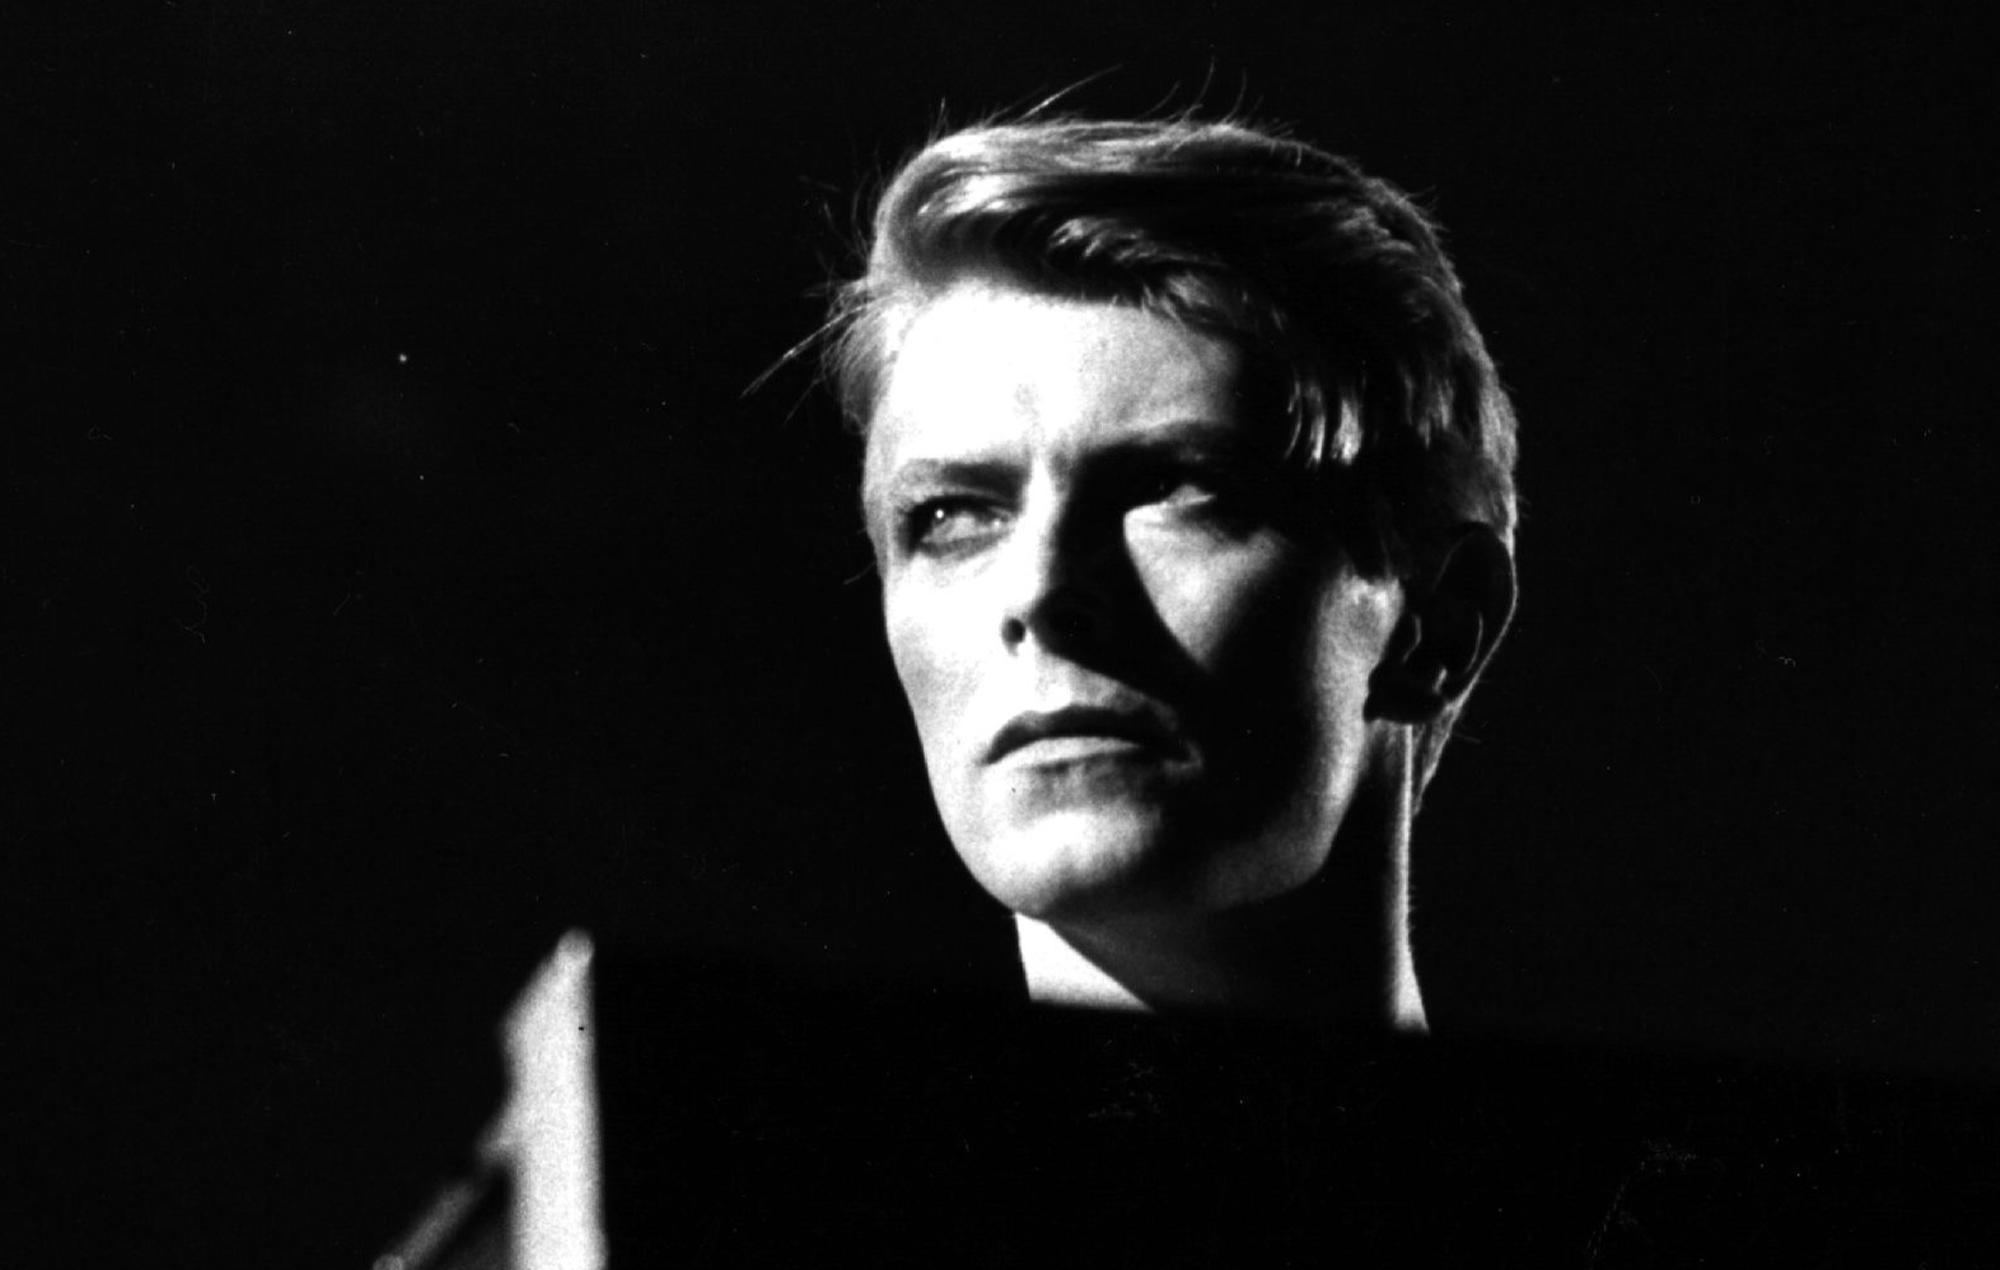 David Bowie wanted to play Rorschach in 'Watchmen' film